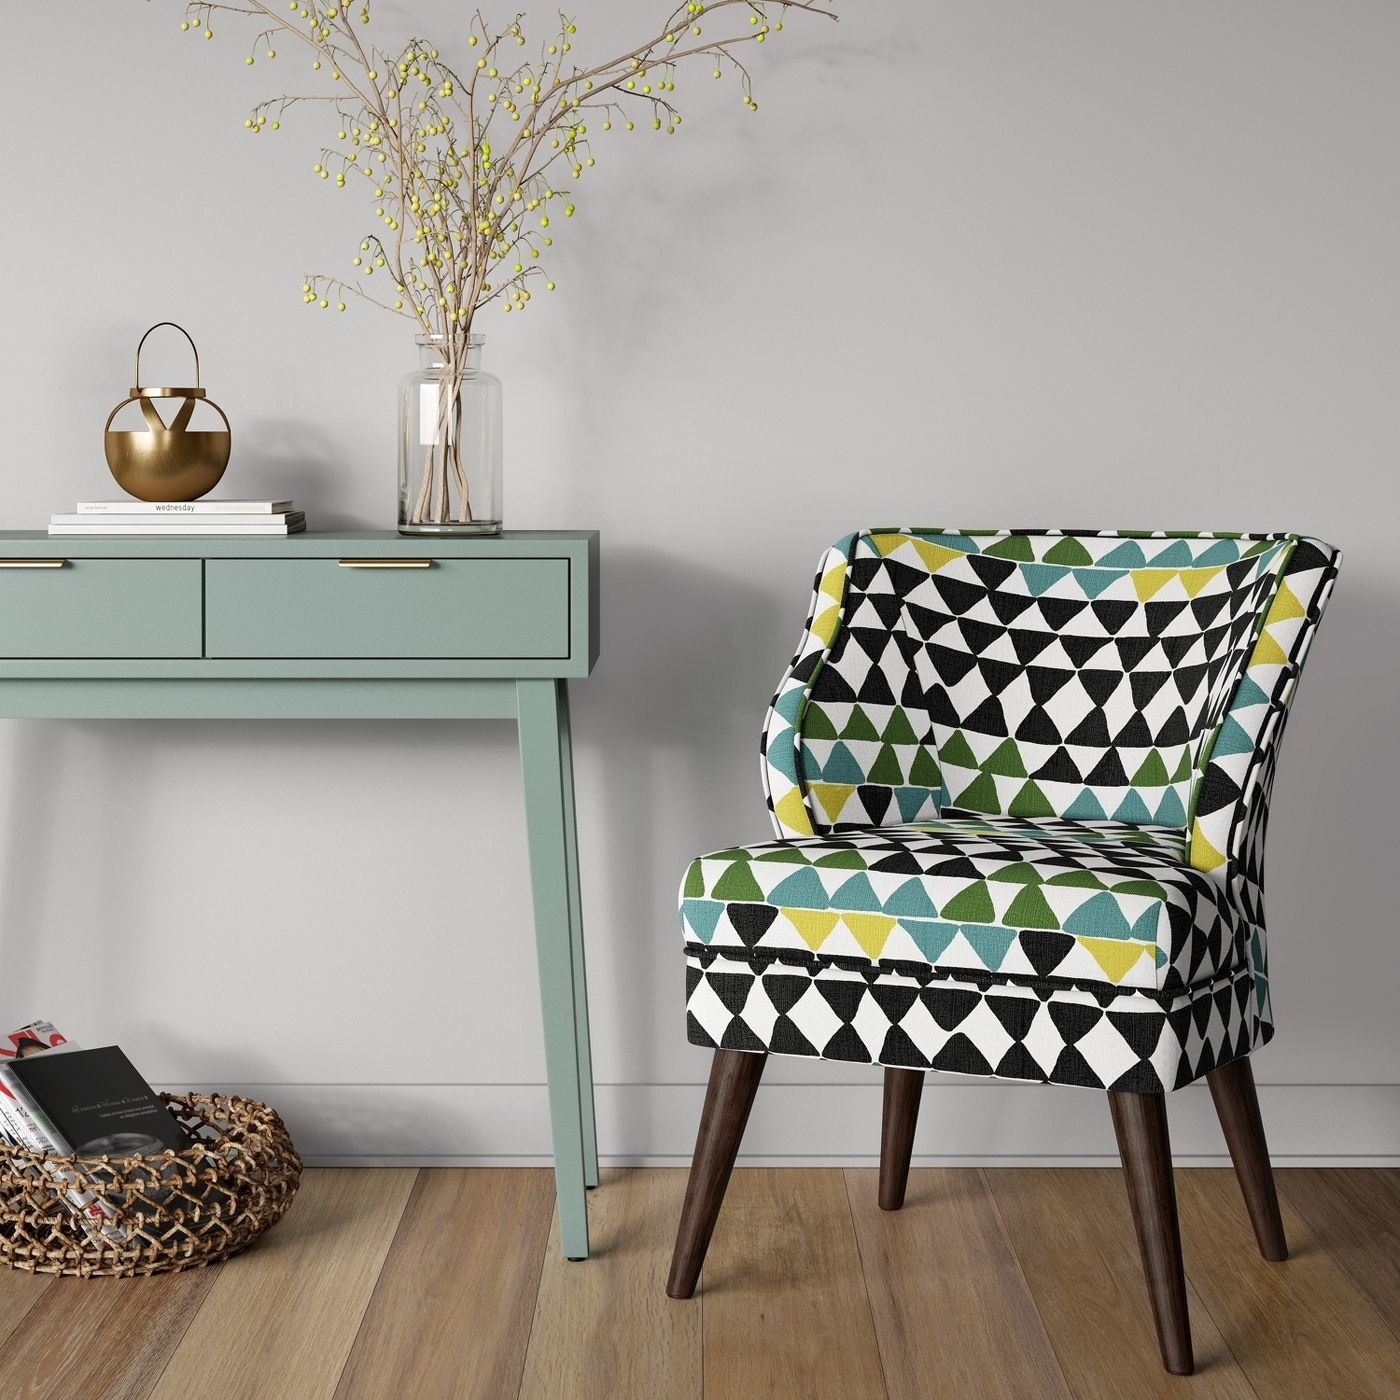 The midcentury armchair in green and blue diamond pattern with brown wood legs